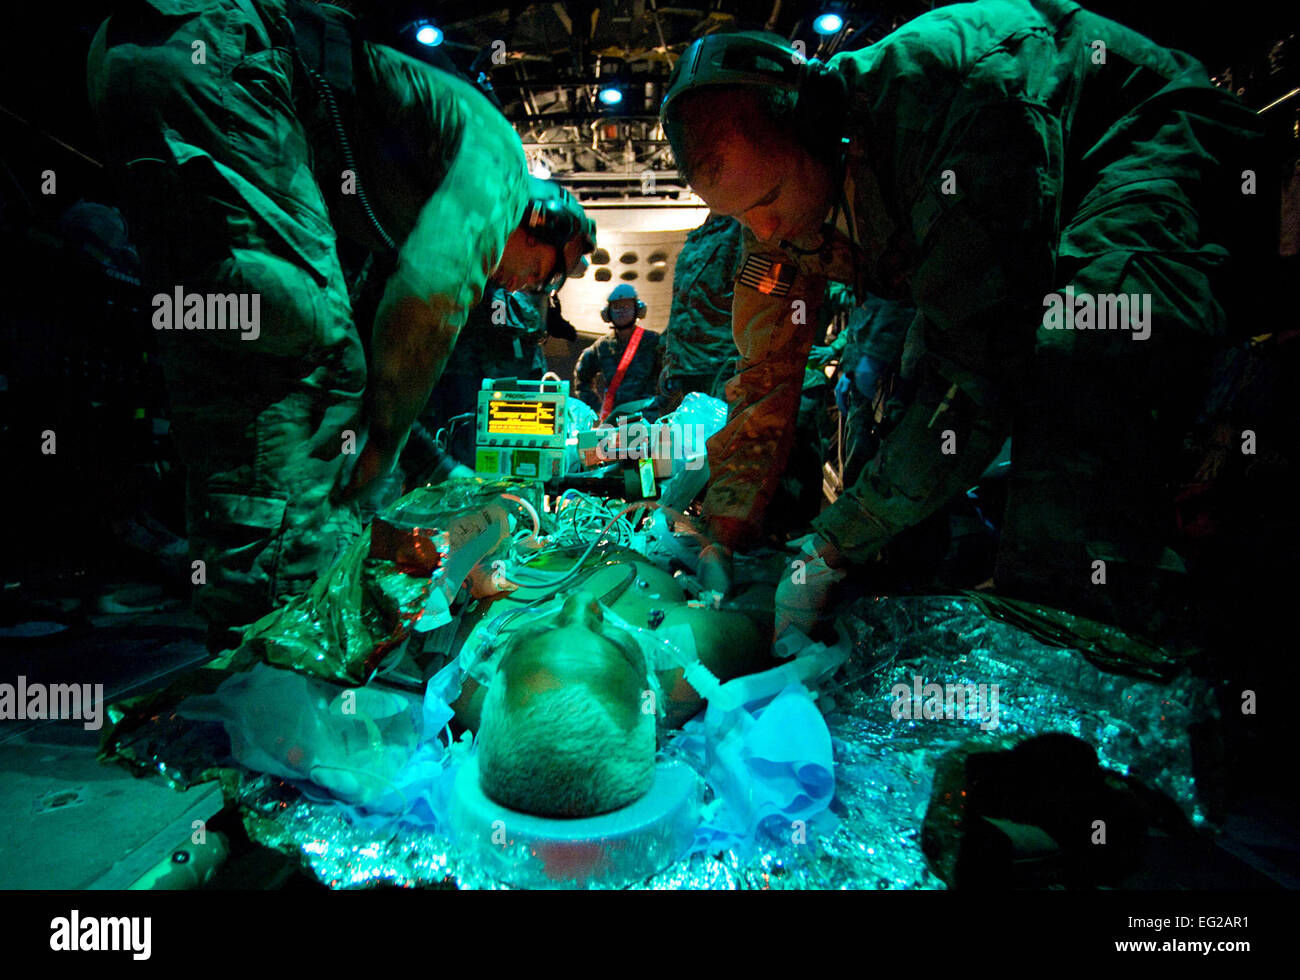 U.S. Air Force Master Sgt. Kevin Preston, an Aeromedical Evacuation Technician with the 651st Expeditionary Aeromedical - Stock Image